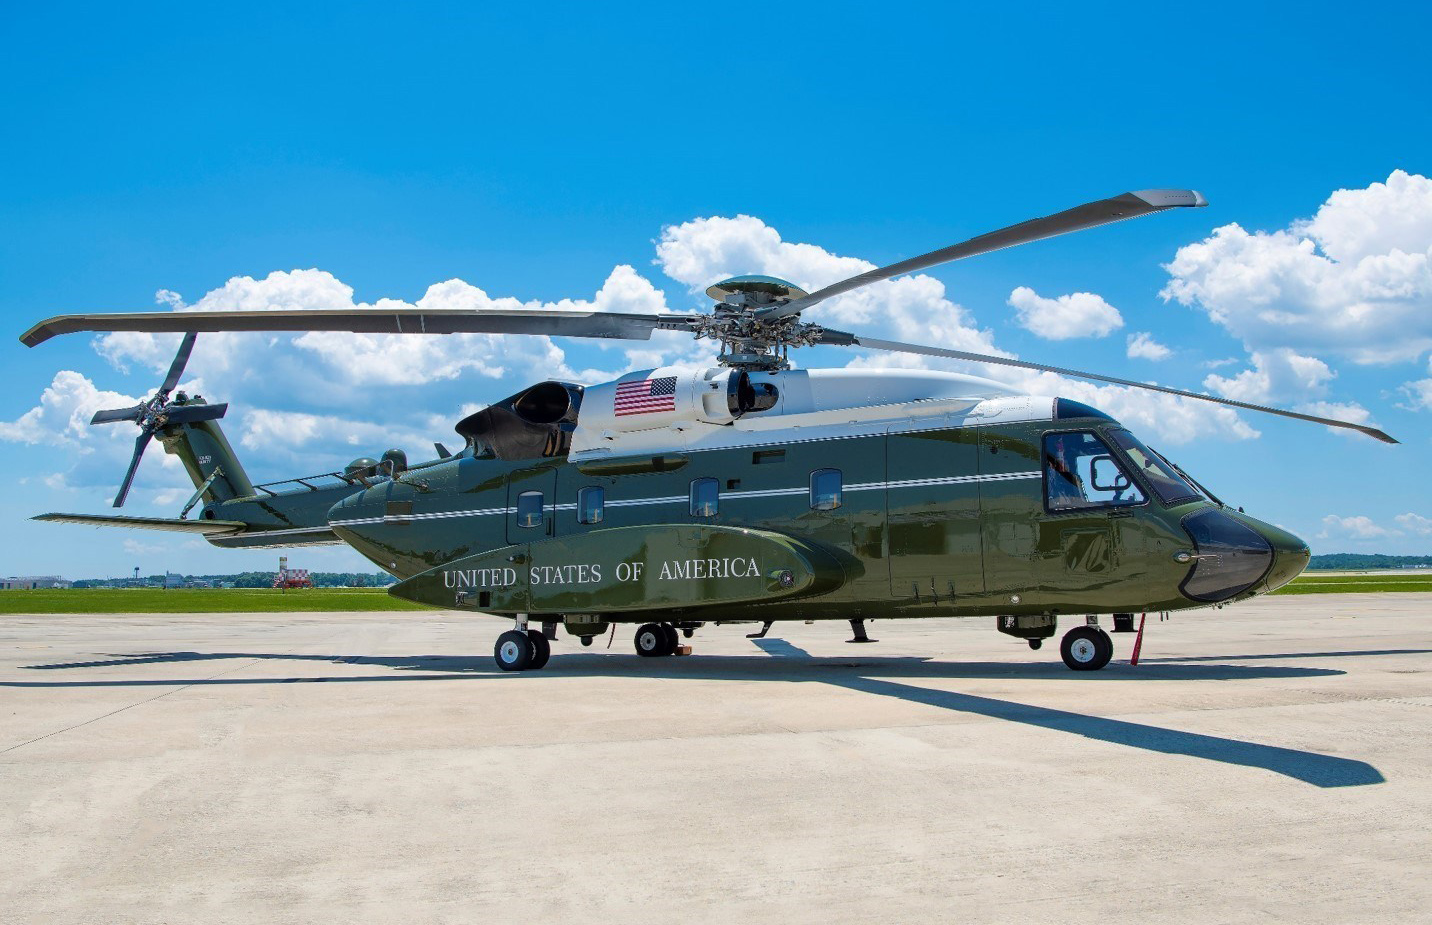 https://www.ainonline.com/sites/default/files/uploads/2020/02/lockheed_martin_corporation_presidential_helicopter.jpg